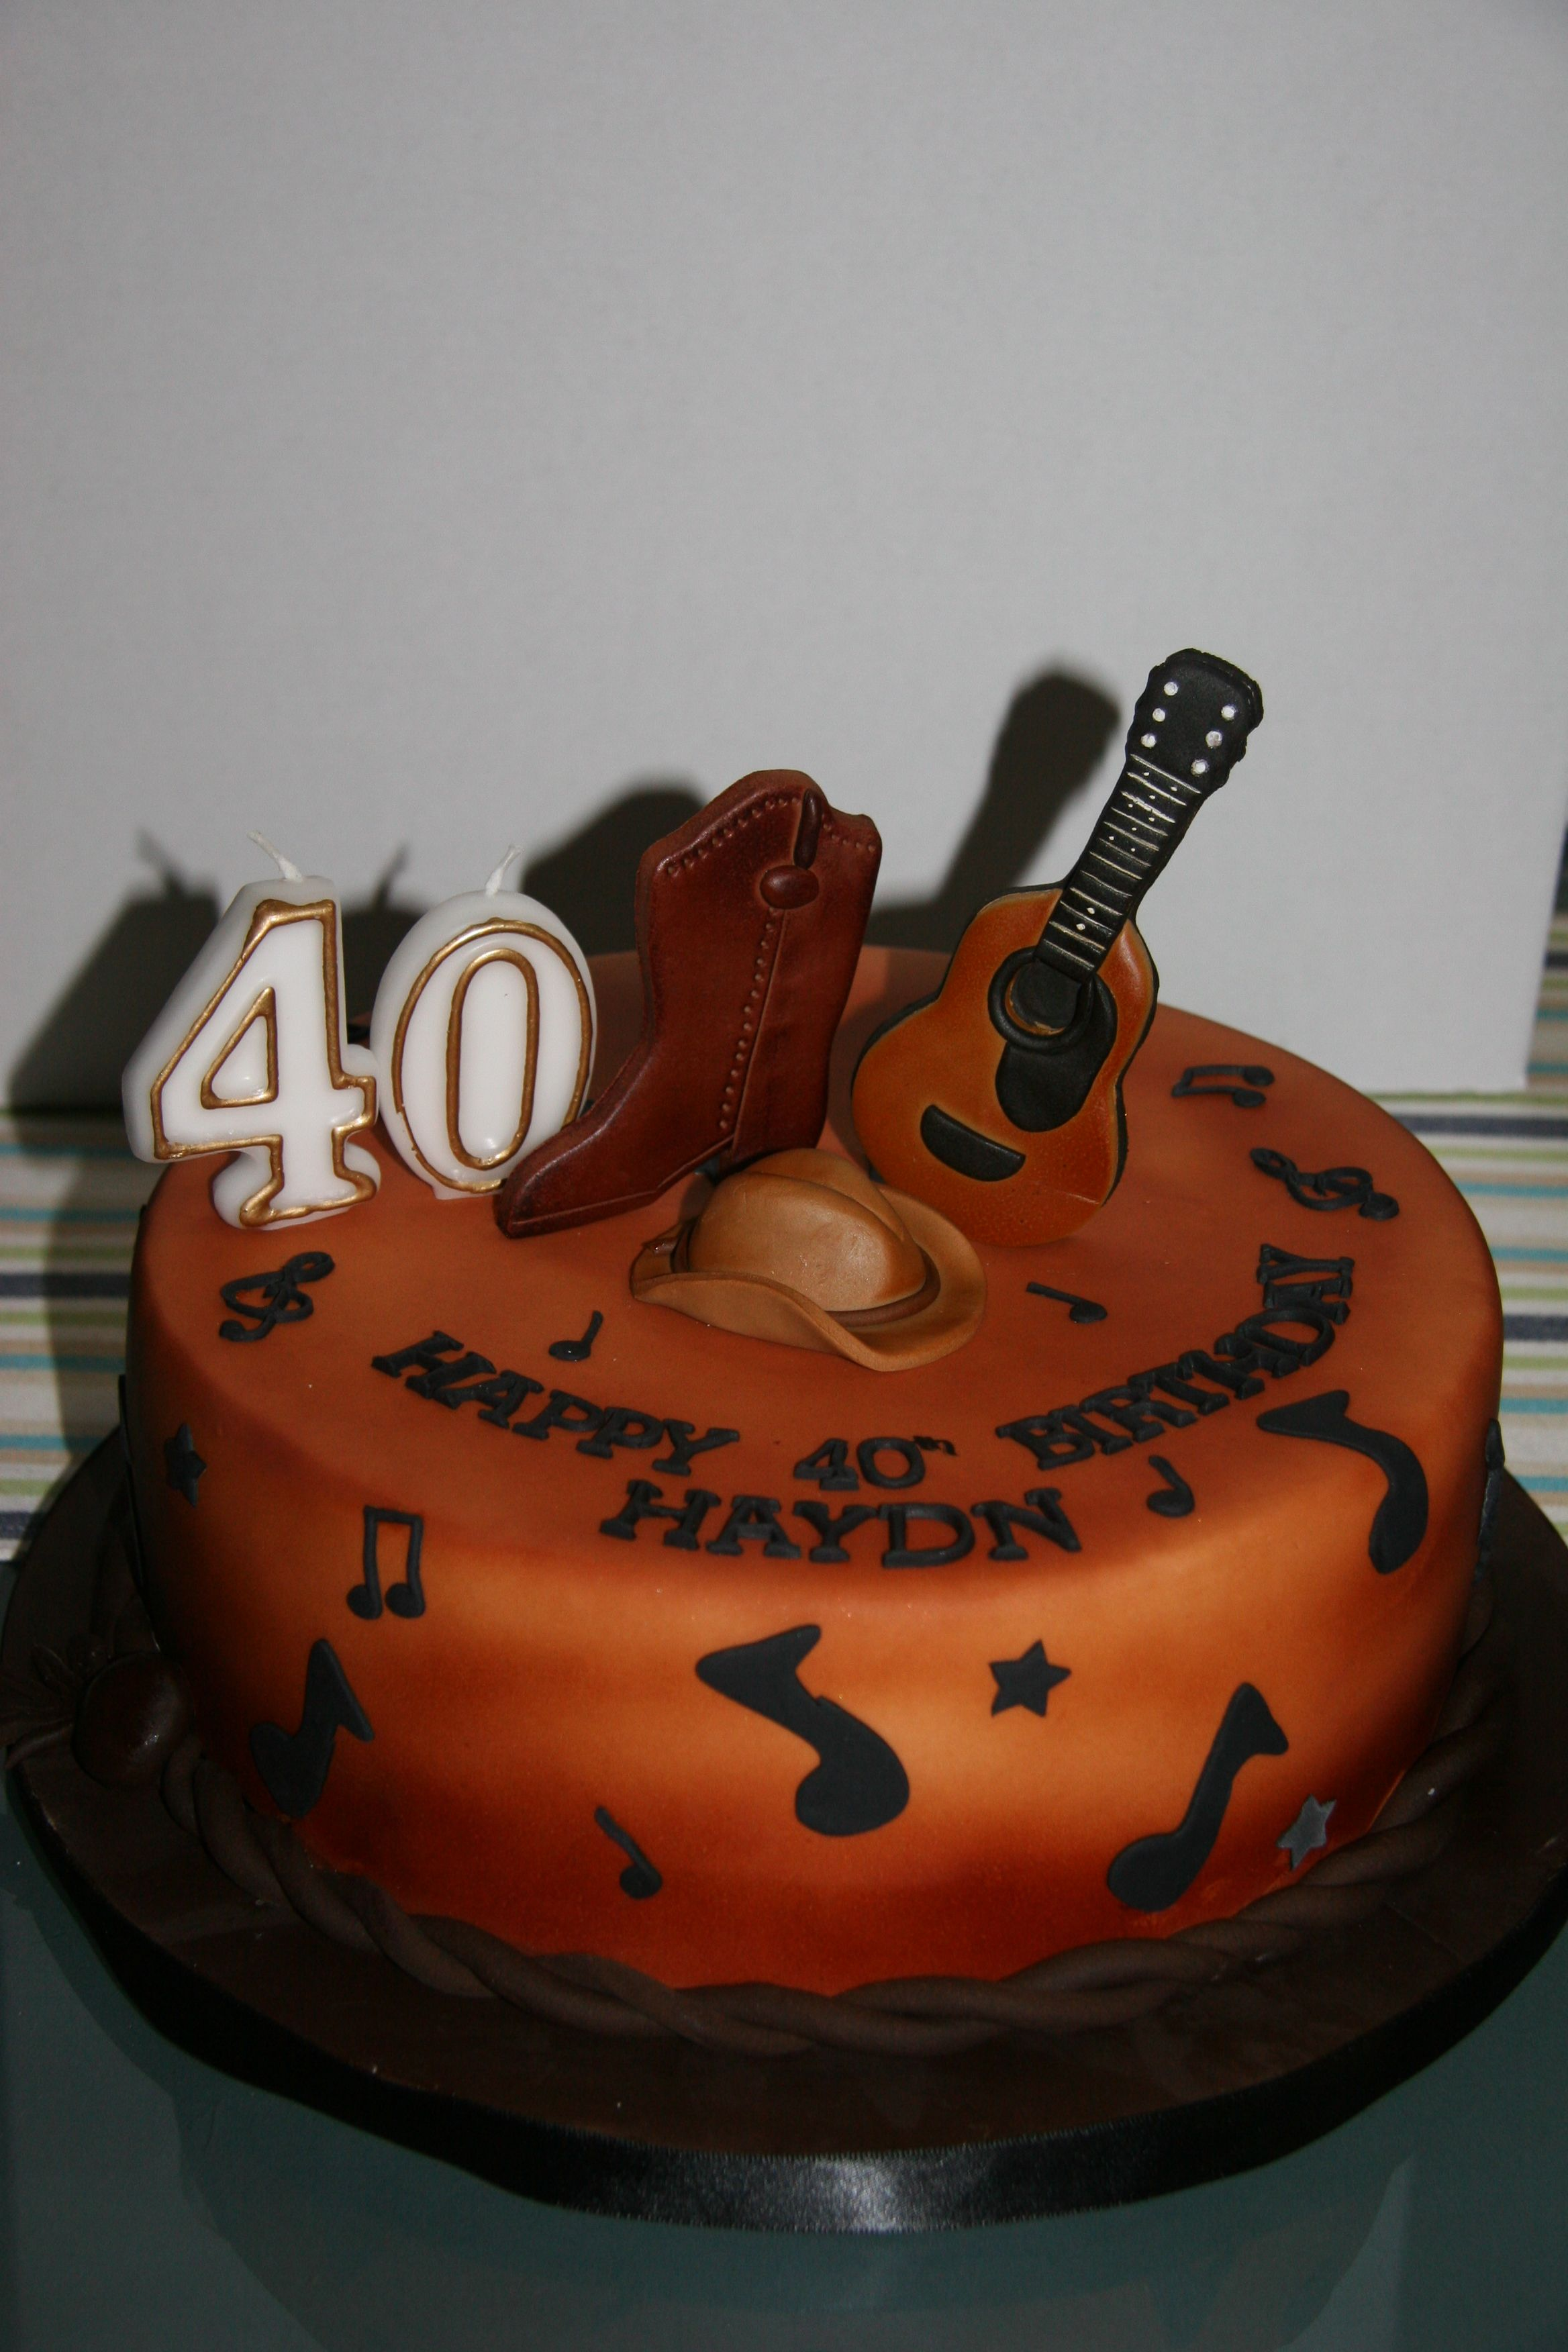 Swell Country And Western Music Themed Cake Country Birthday Cakes Funny Birthday Cards Online Barepcheapnameinfo